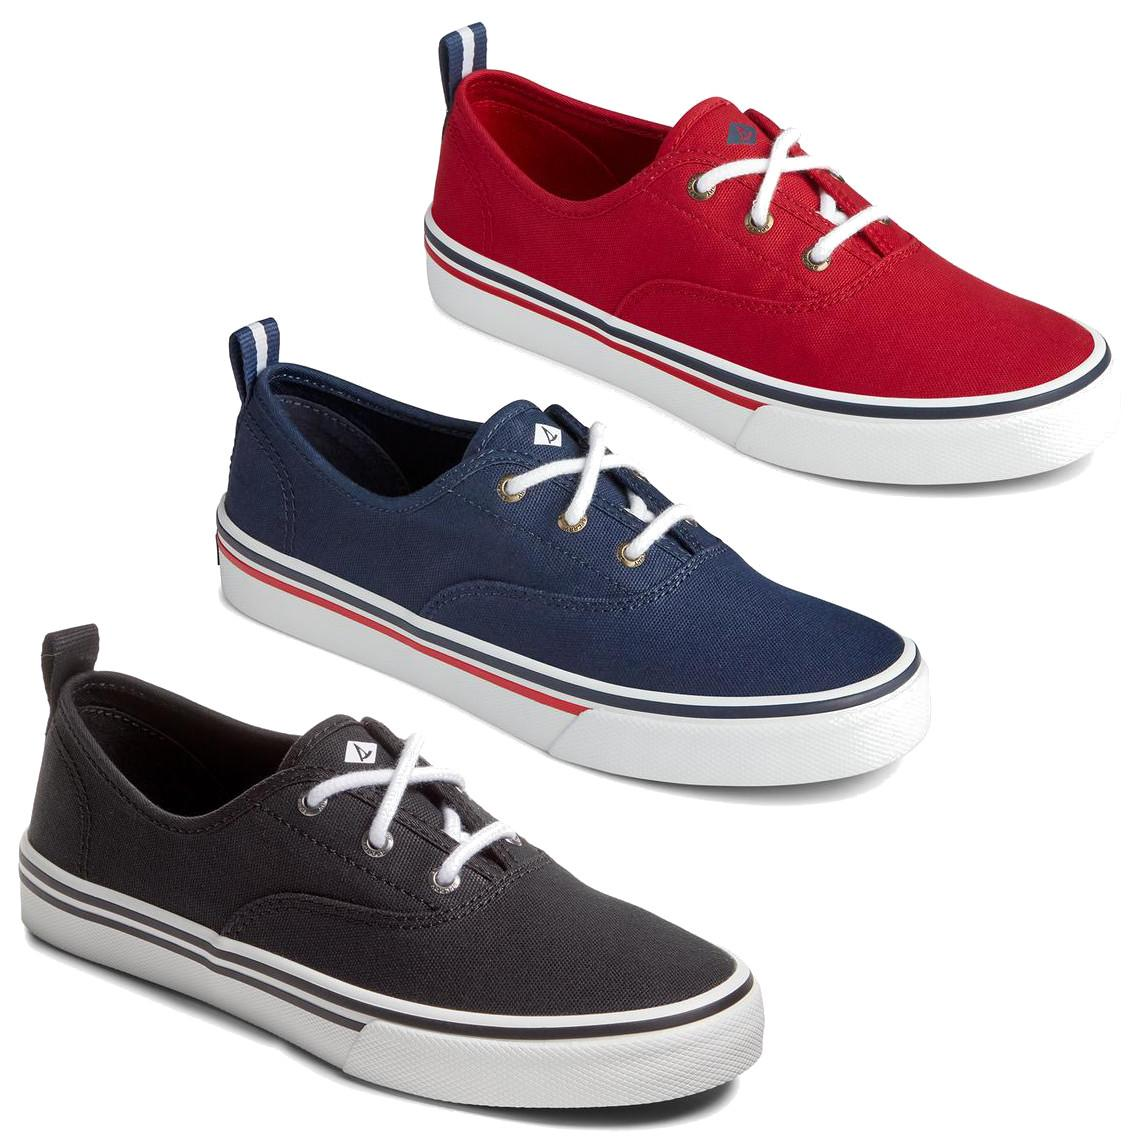 Sperry-Womens-Crest-Cvo-Canvas-Sneakers